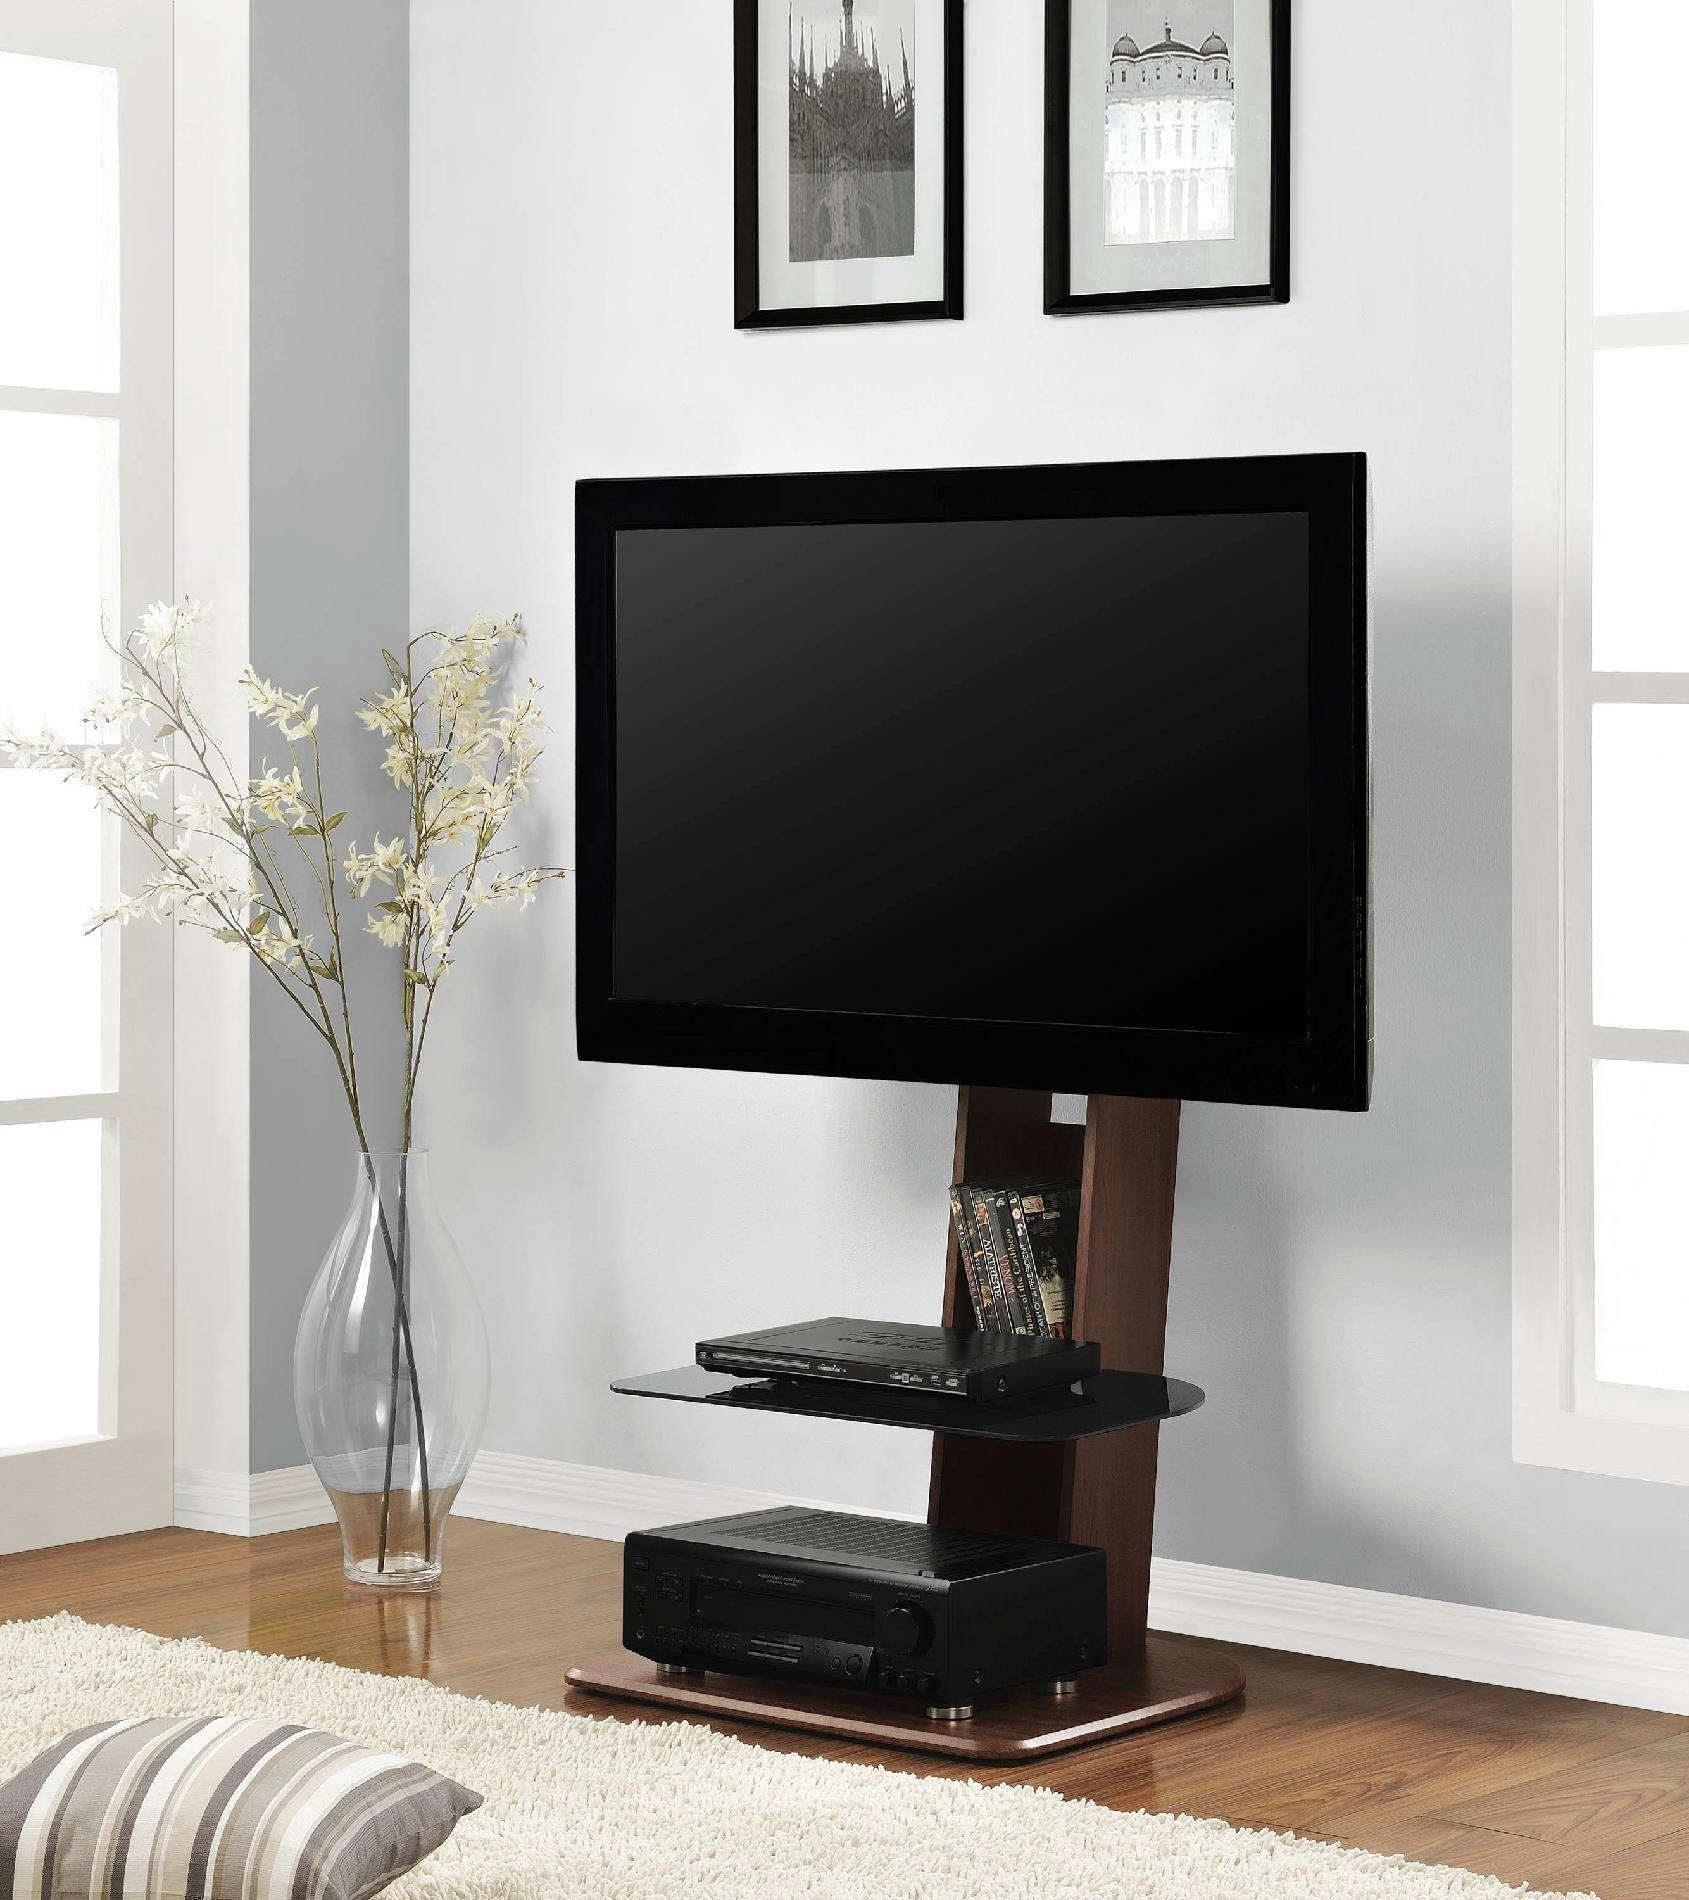 Elegant Free Standing Tv Stand 53 On Online With Free Standing Tv Regarding Skinny Tv Stands (View 5 of 15)